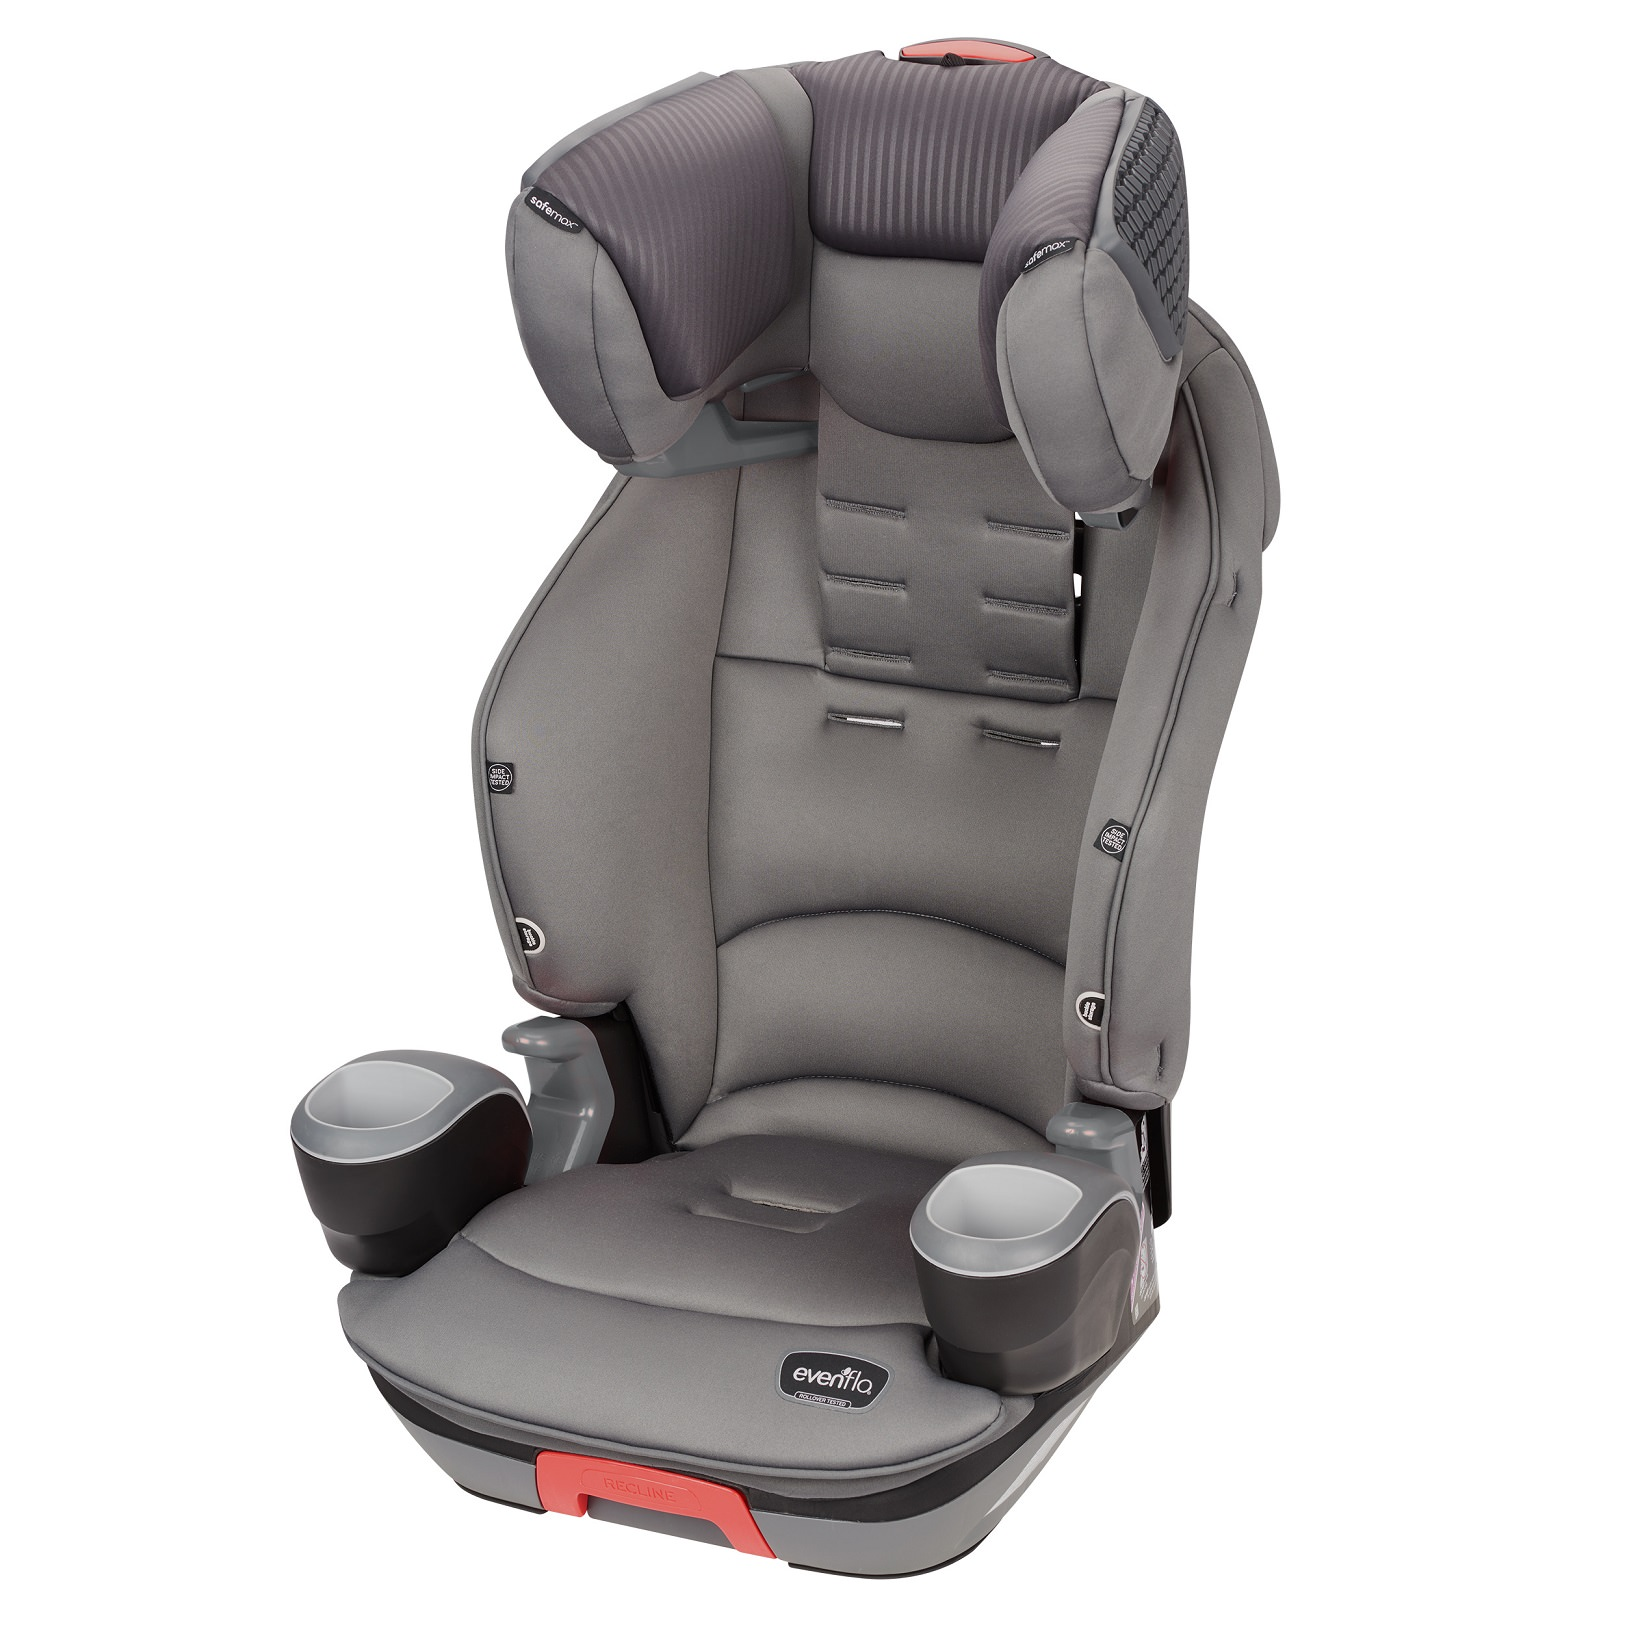 Evenflo Safemax Convertible w/Sensorsafe Car Seat, Charcoal Fizz